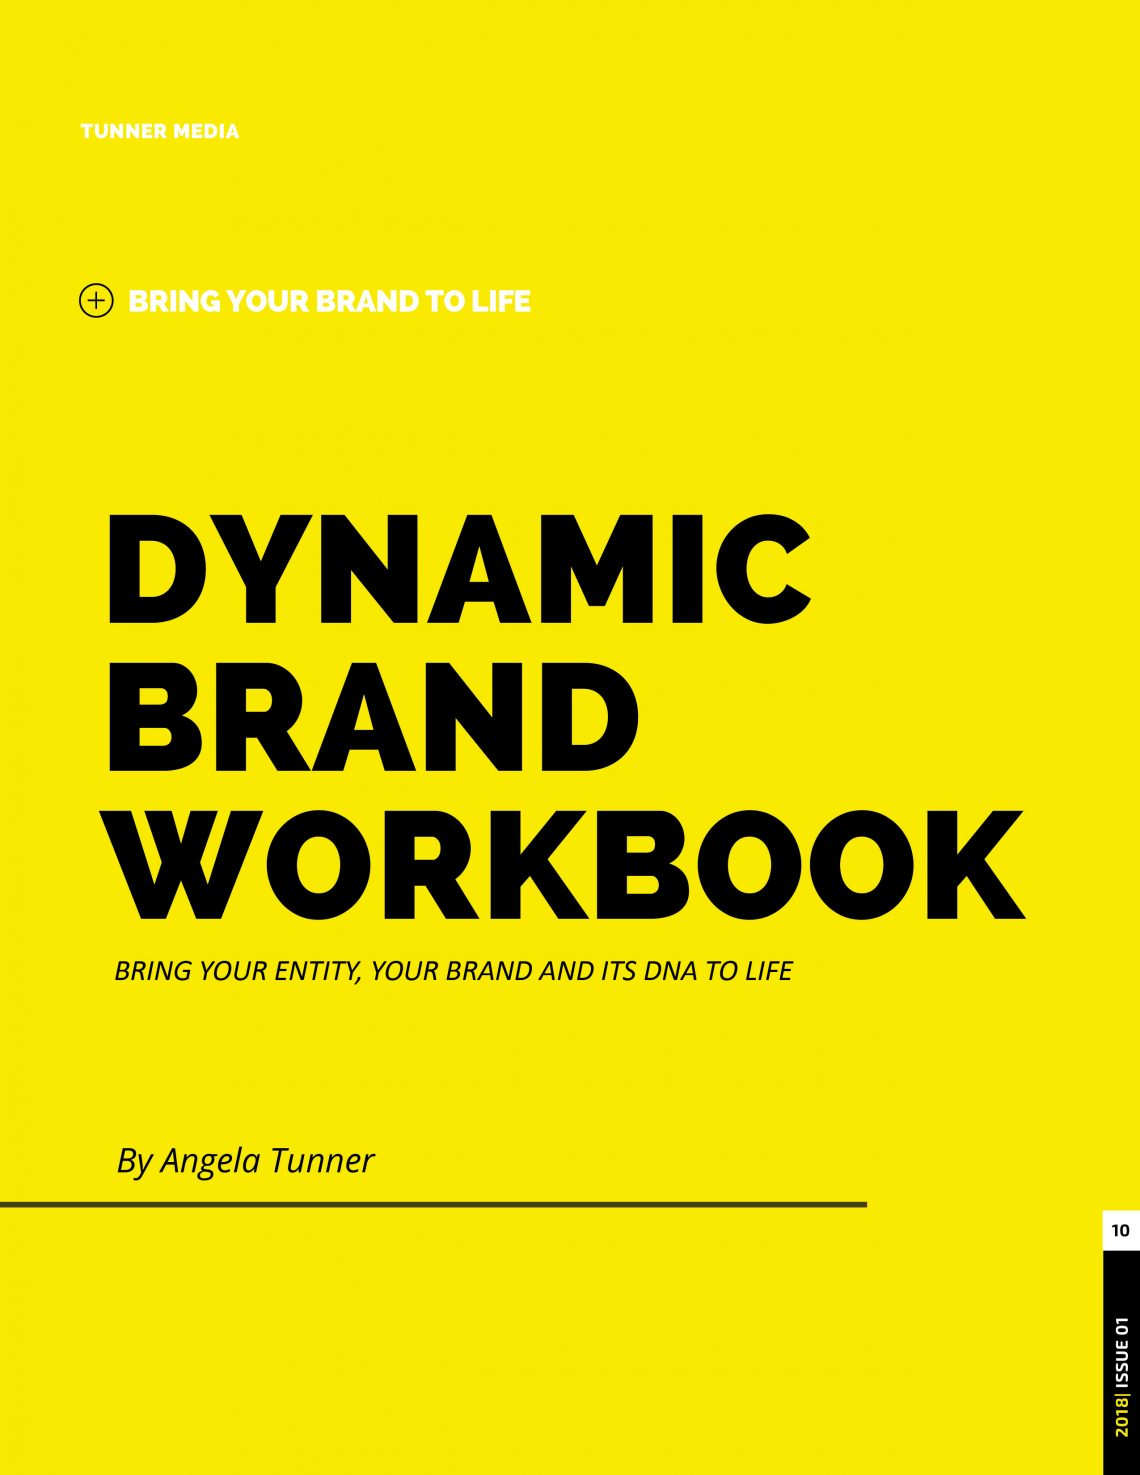 dynamicbrand workbook cover